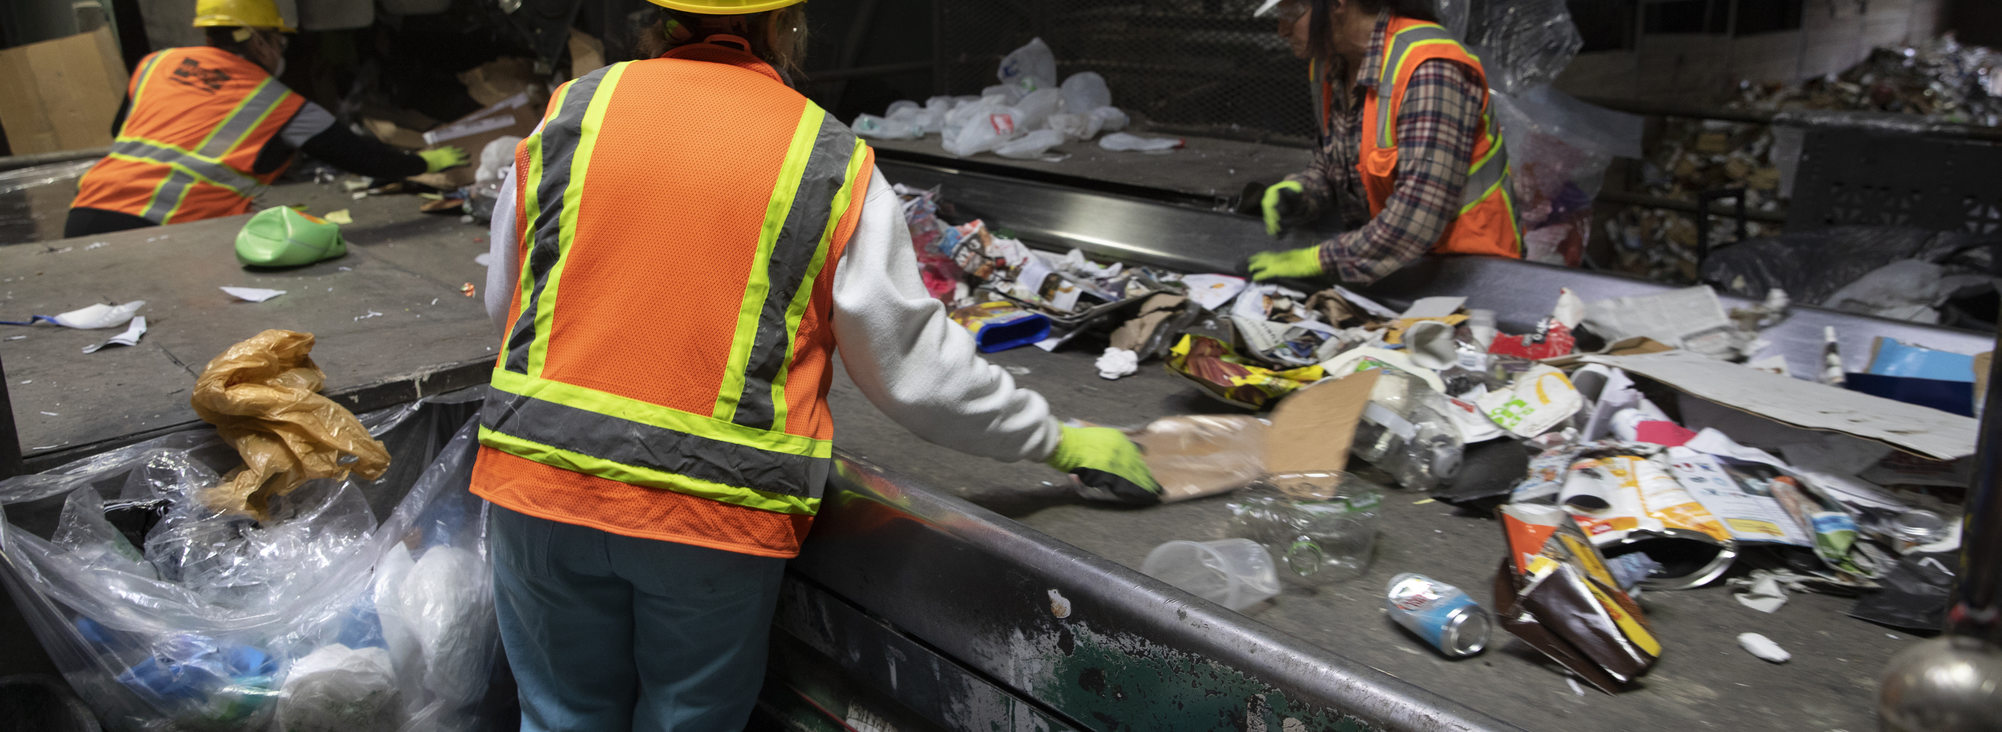 workers at a materials sorting facility pull out plastic bags and other non-recyclable items